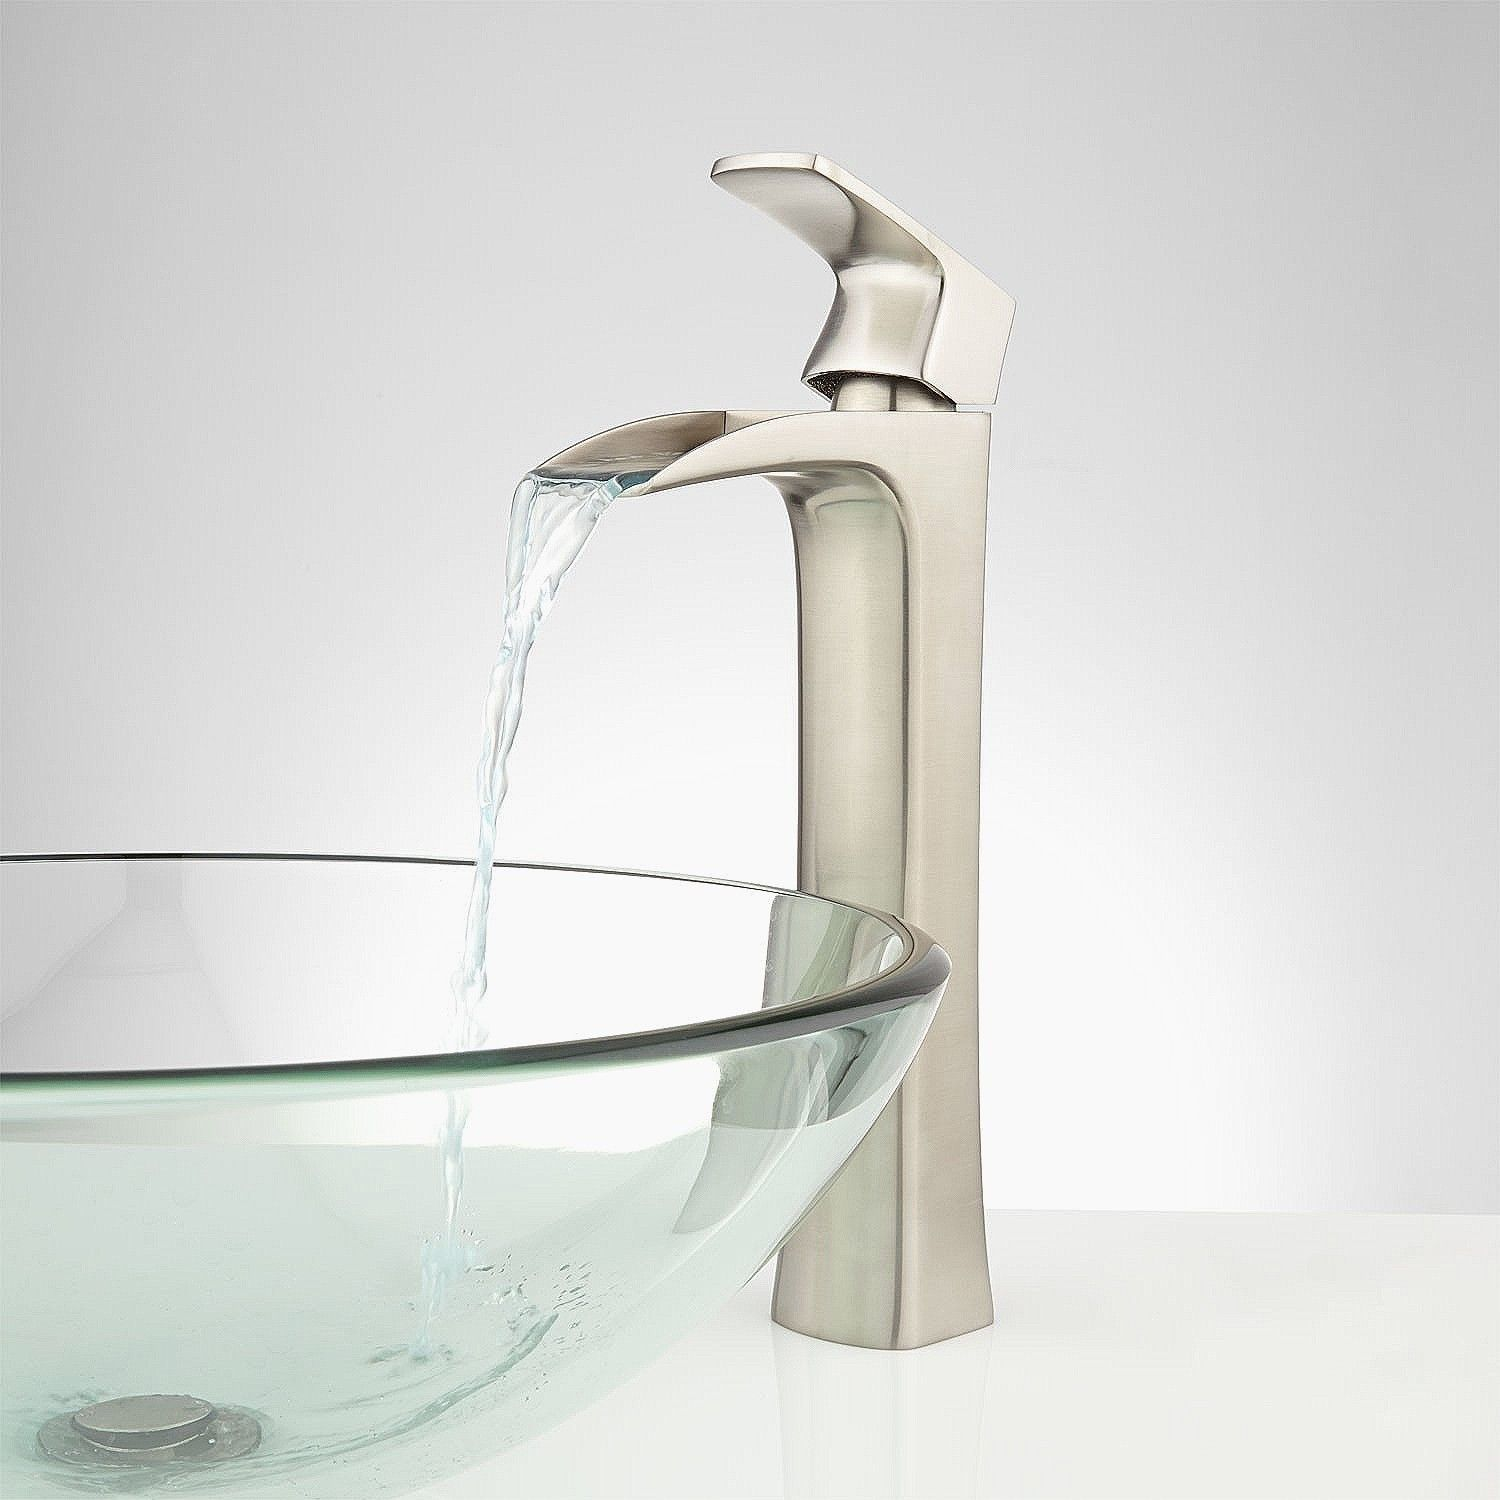 Phenomenal Pin By Home Furniture On Home Furniture One Vessel Sink Interior Design Ideas Helimdqseriescom